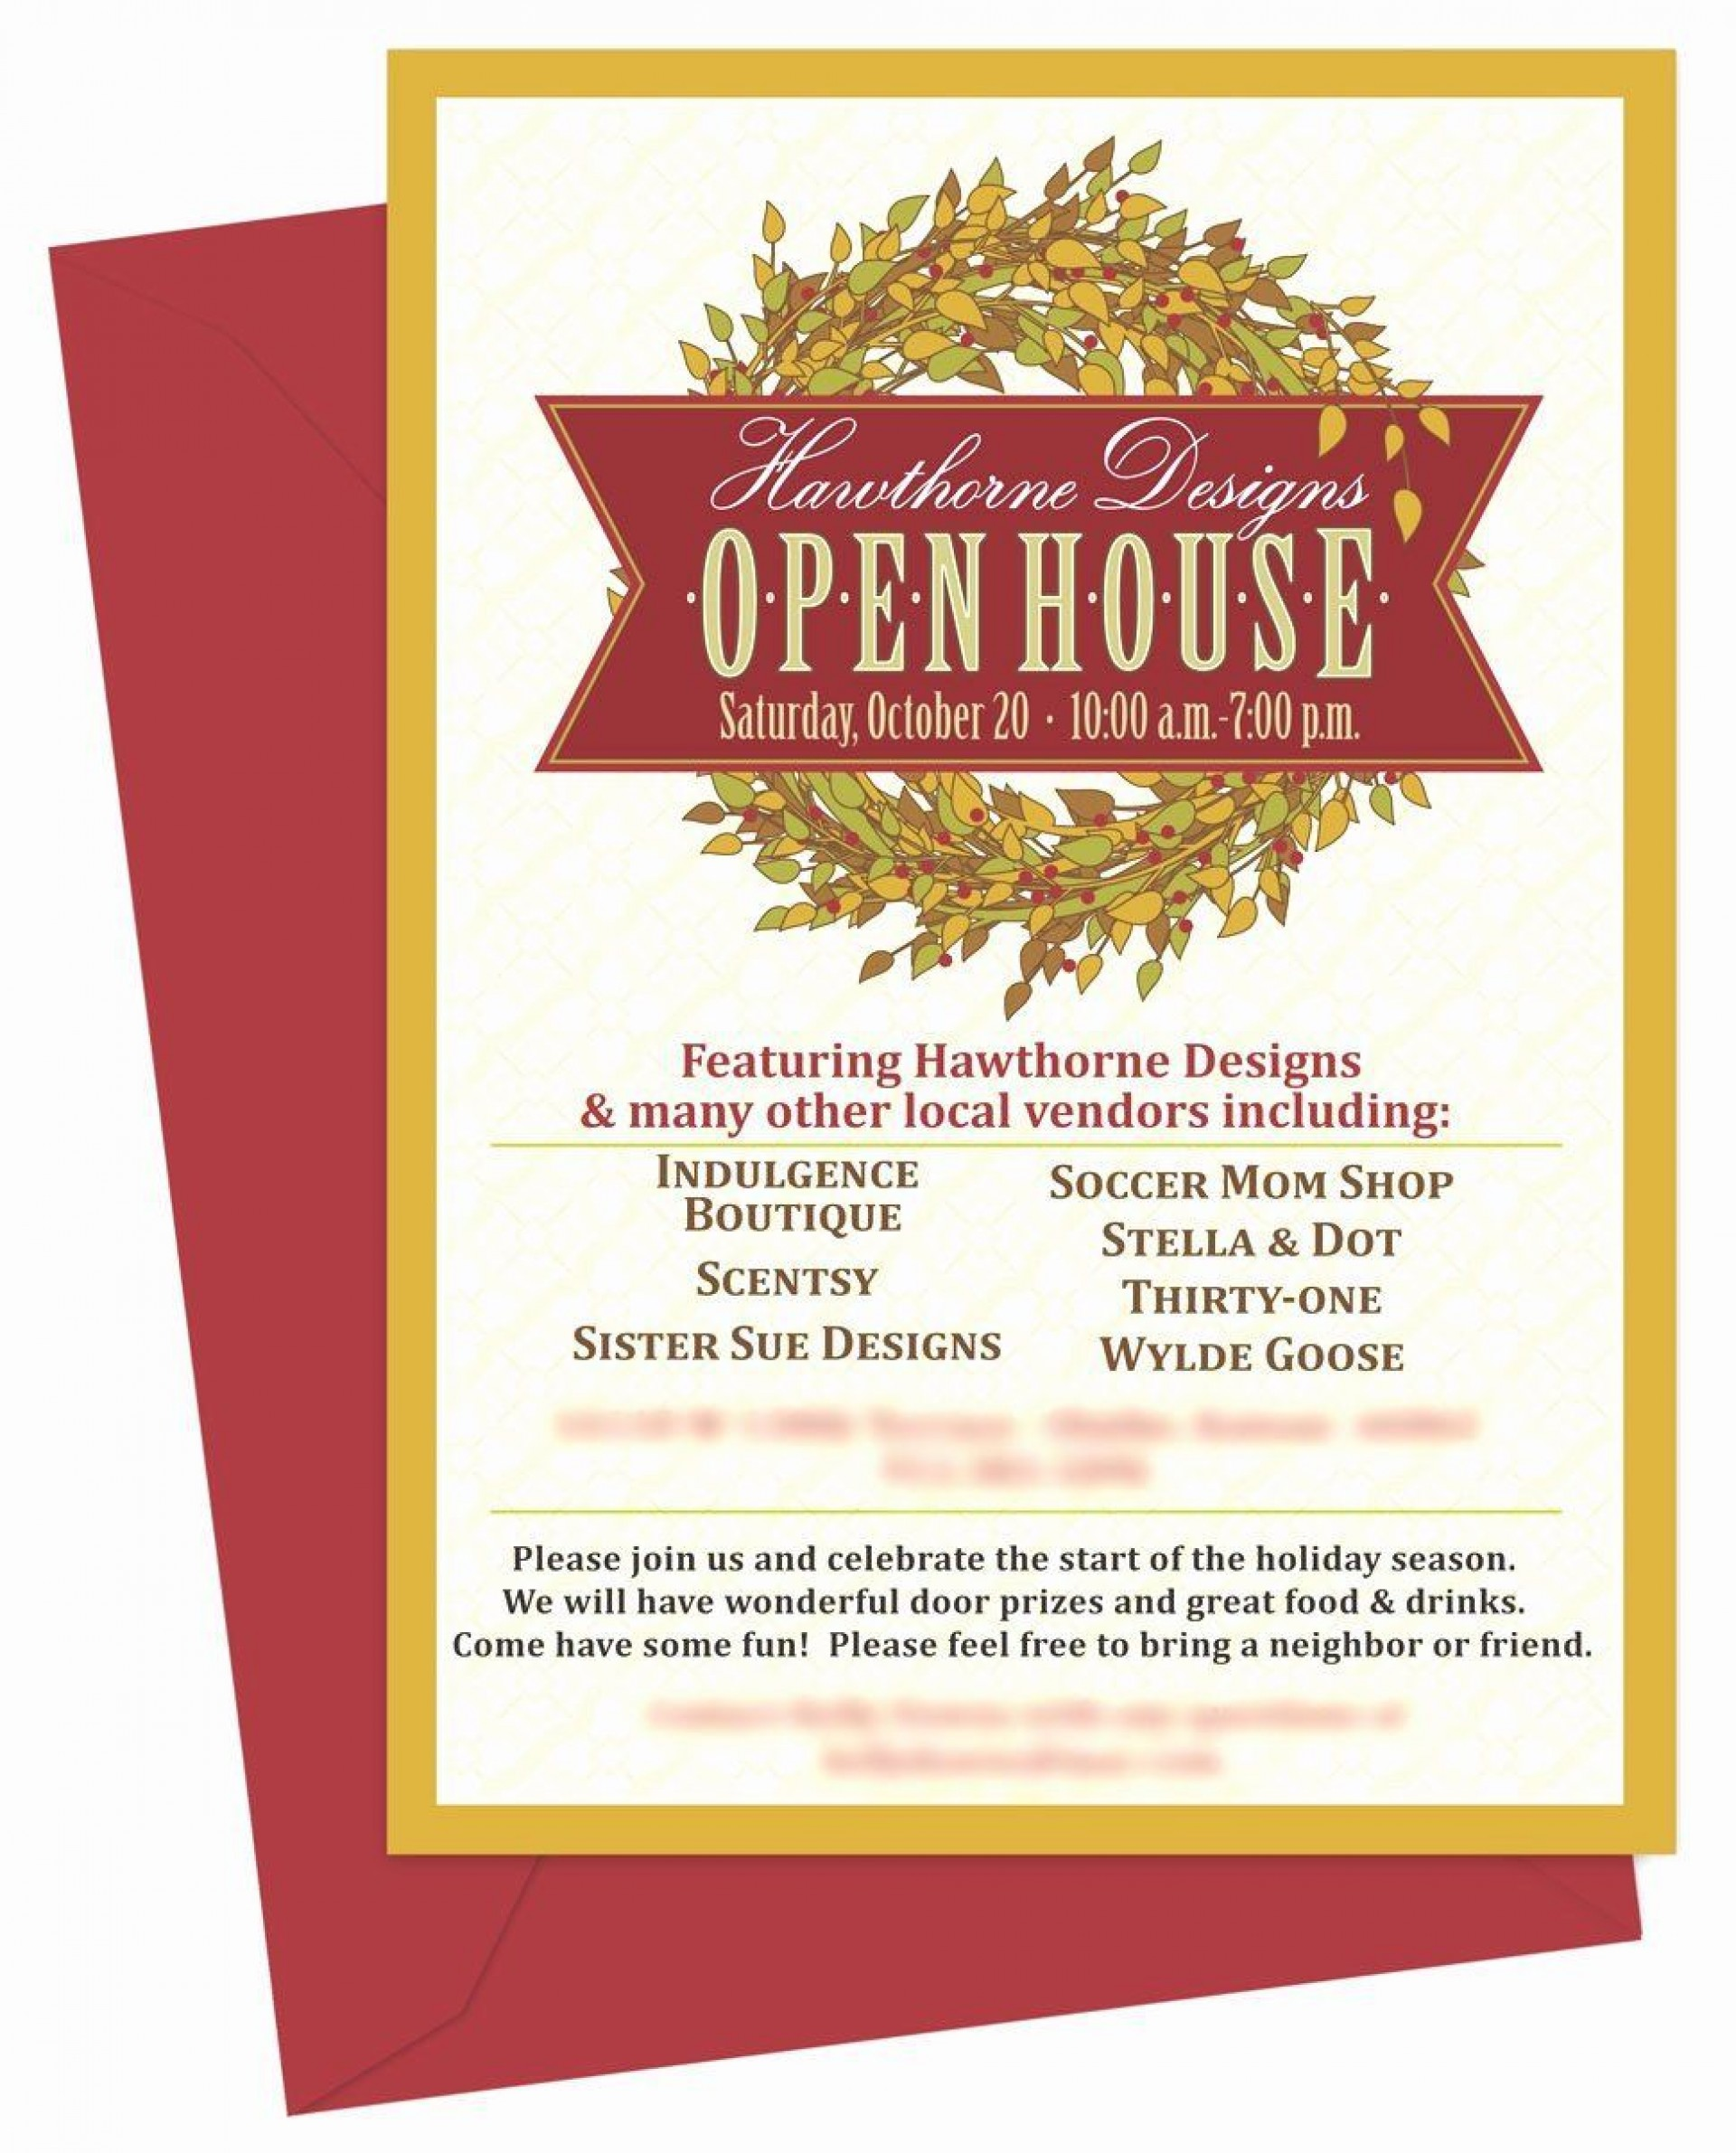 001 Incredible Holiday Open House Invitation Template Photo  Christma Free Printable Wording Idea1920